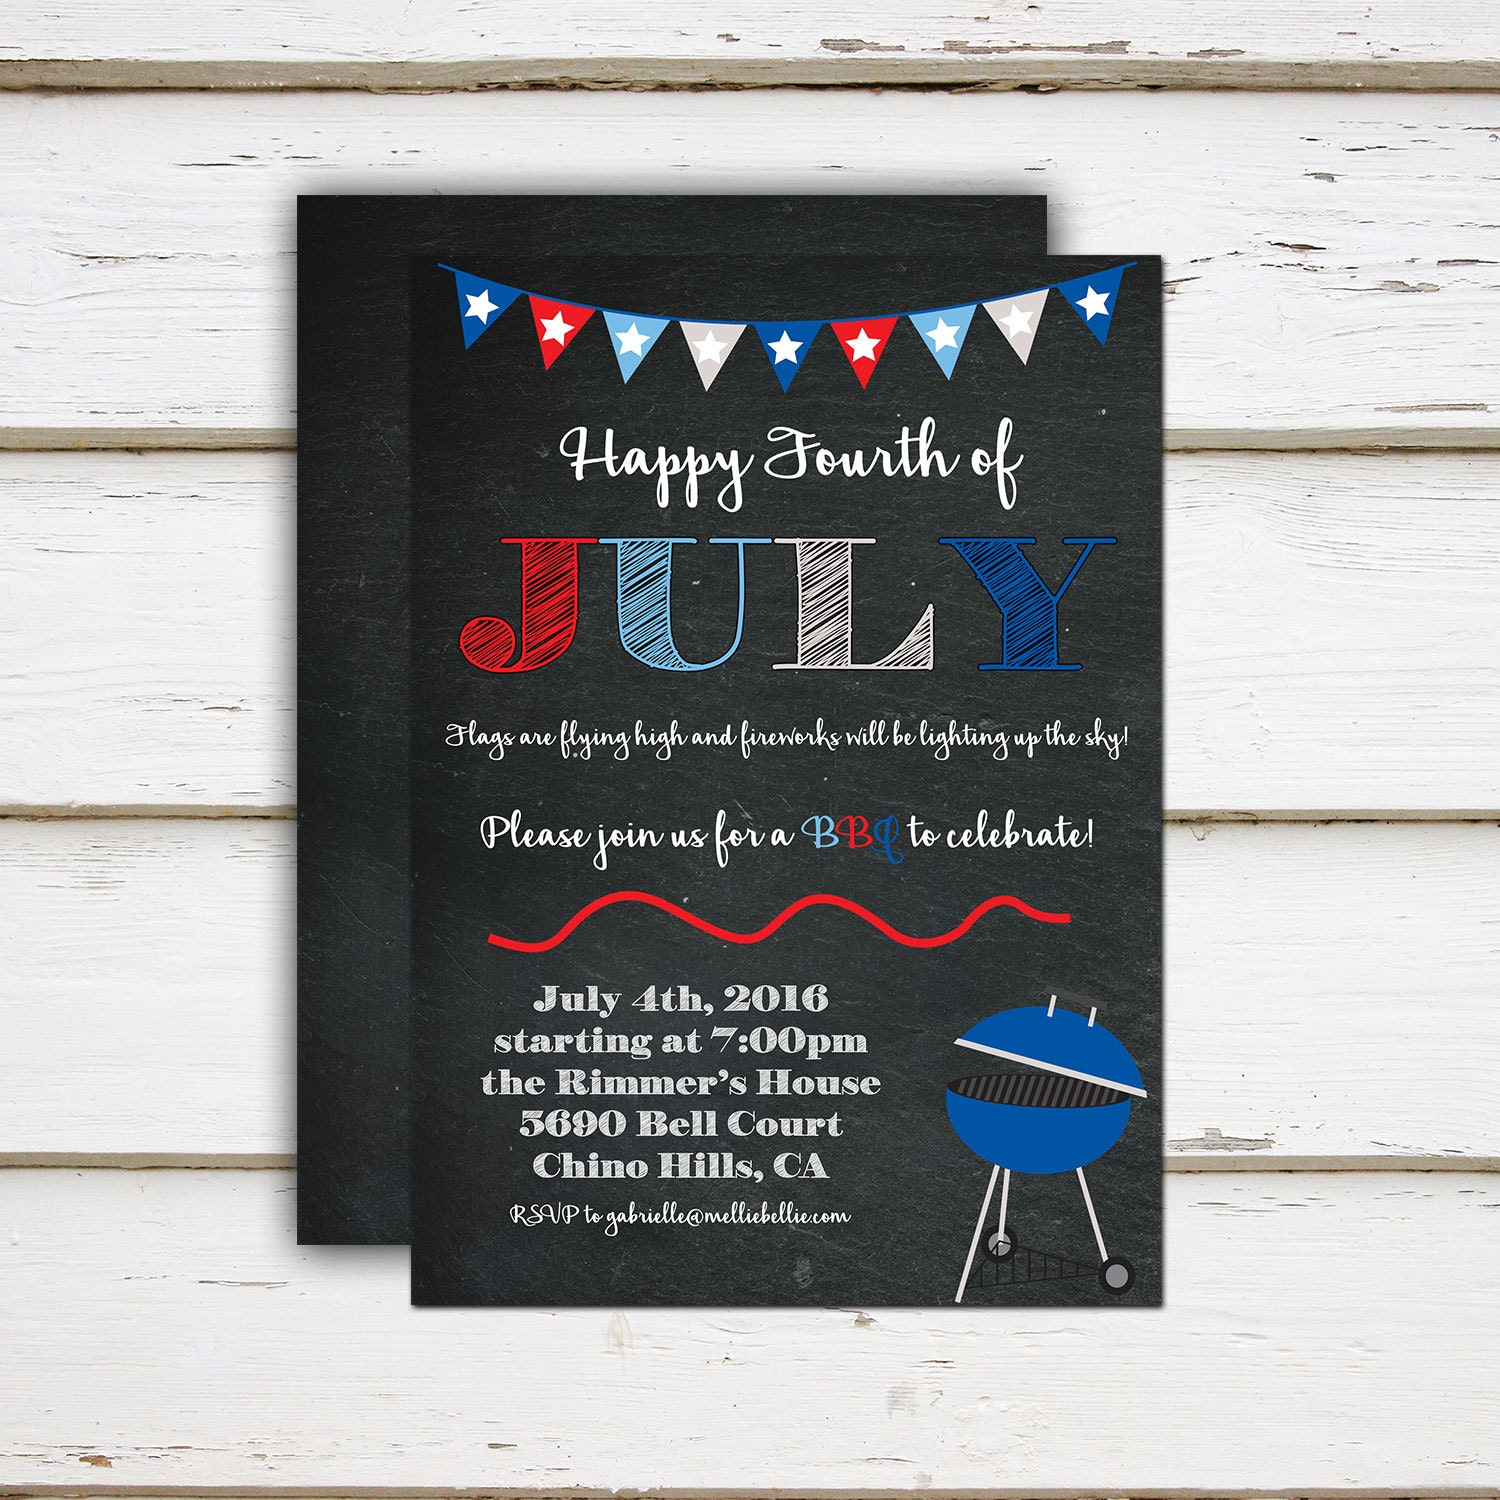 Printable Fourth of July Invitation, 4th of July, BBQ, Barbecue, Fireworks, Summer Party, Celebration, Birthday, Chalkboard, MB167